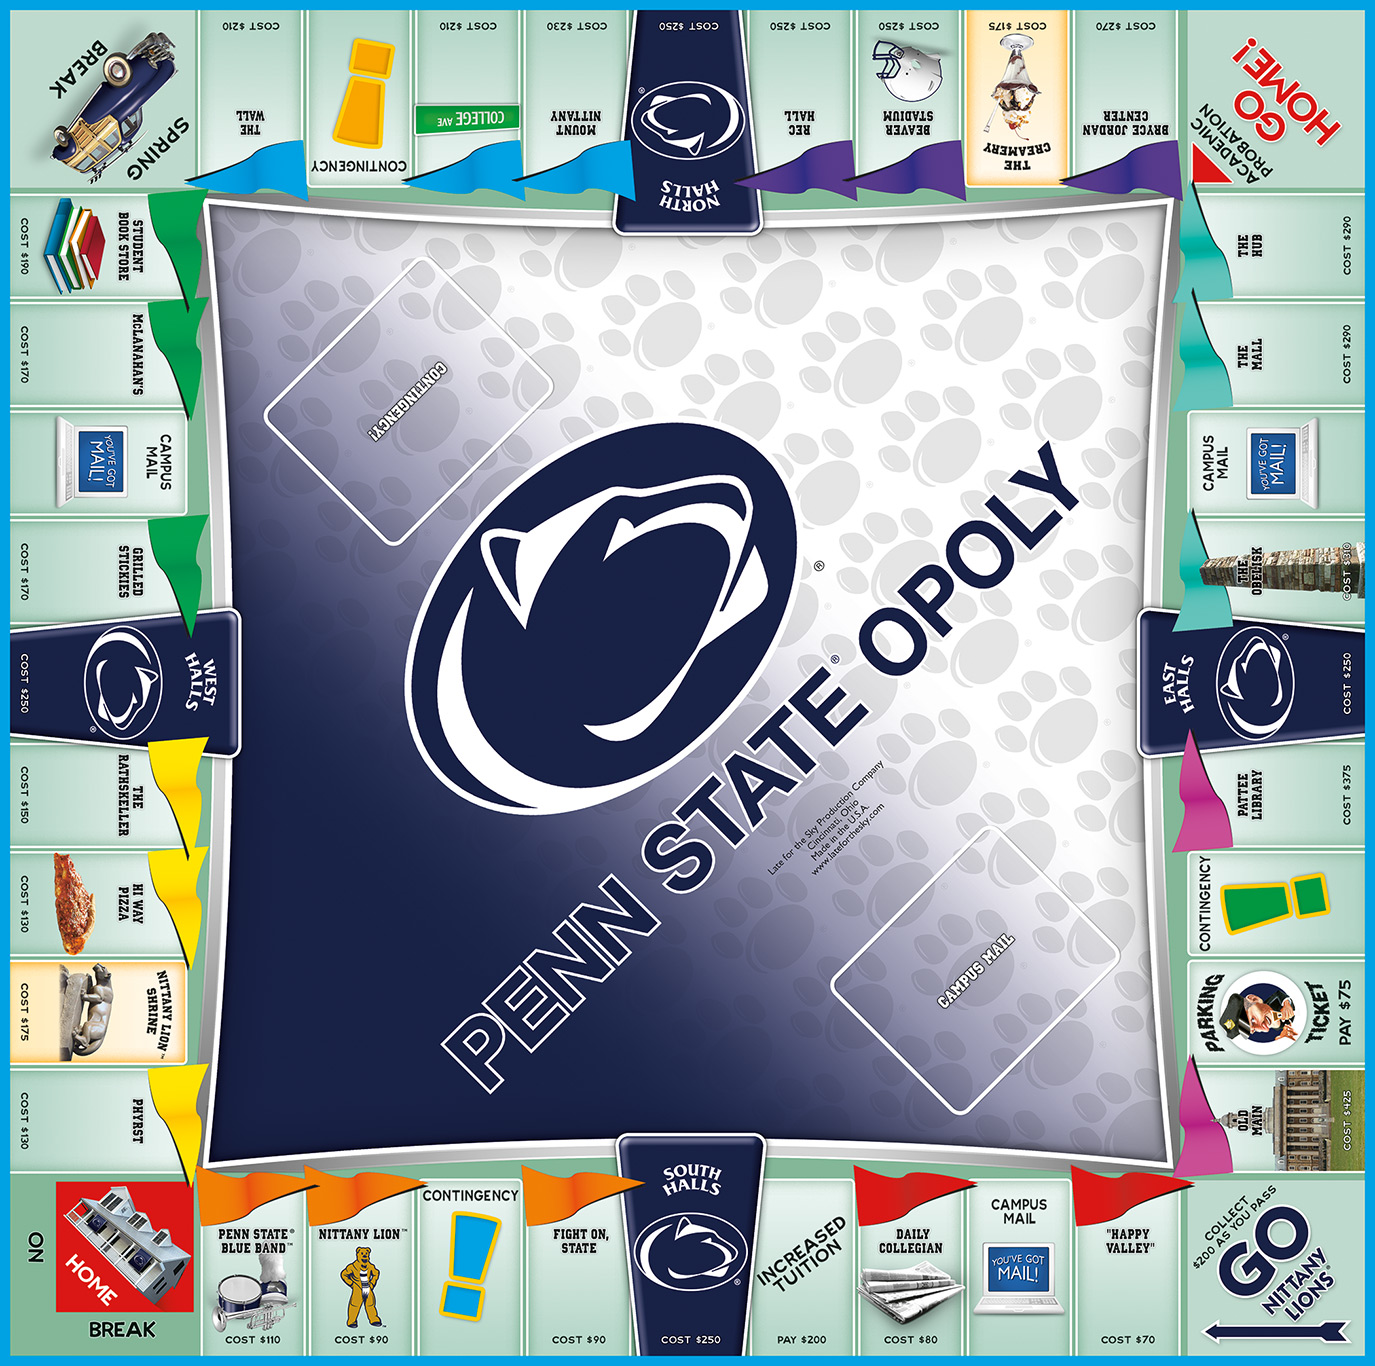 PENN STATEOPOLY Board Game